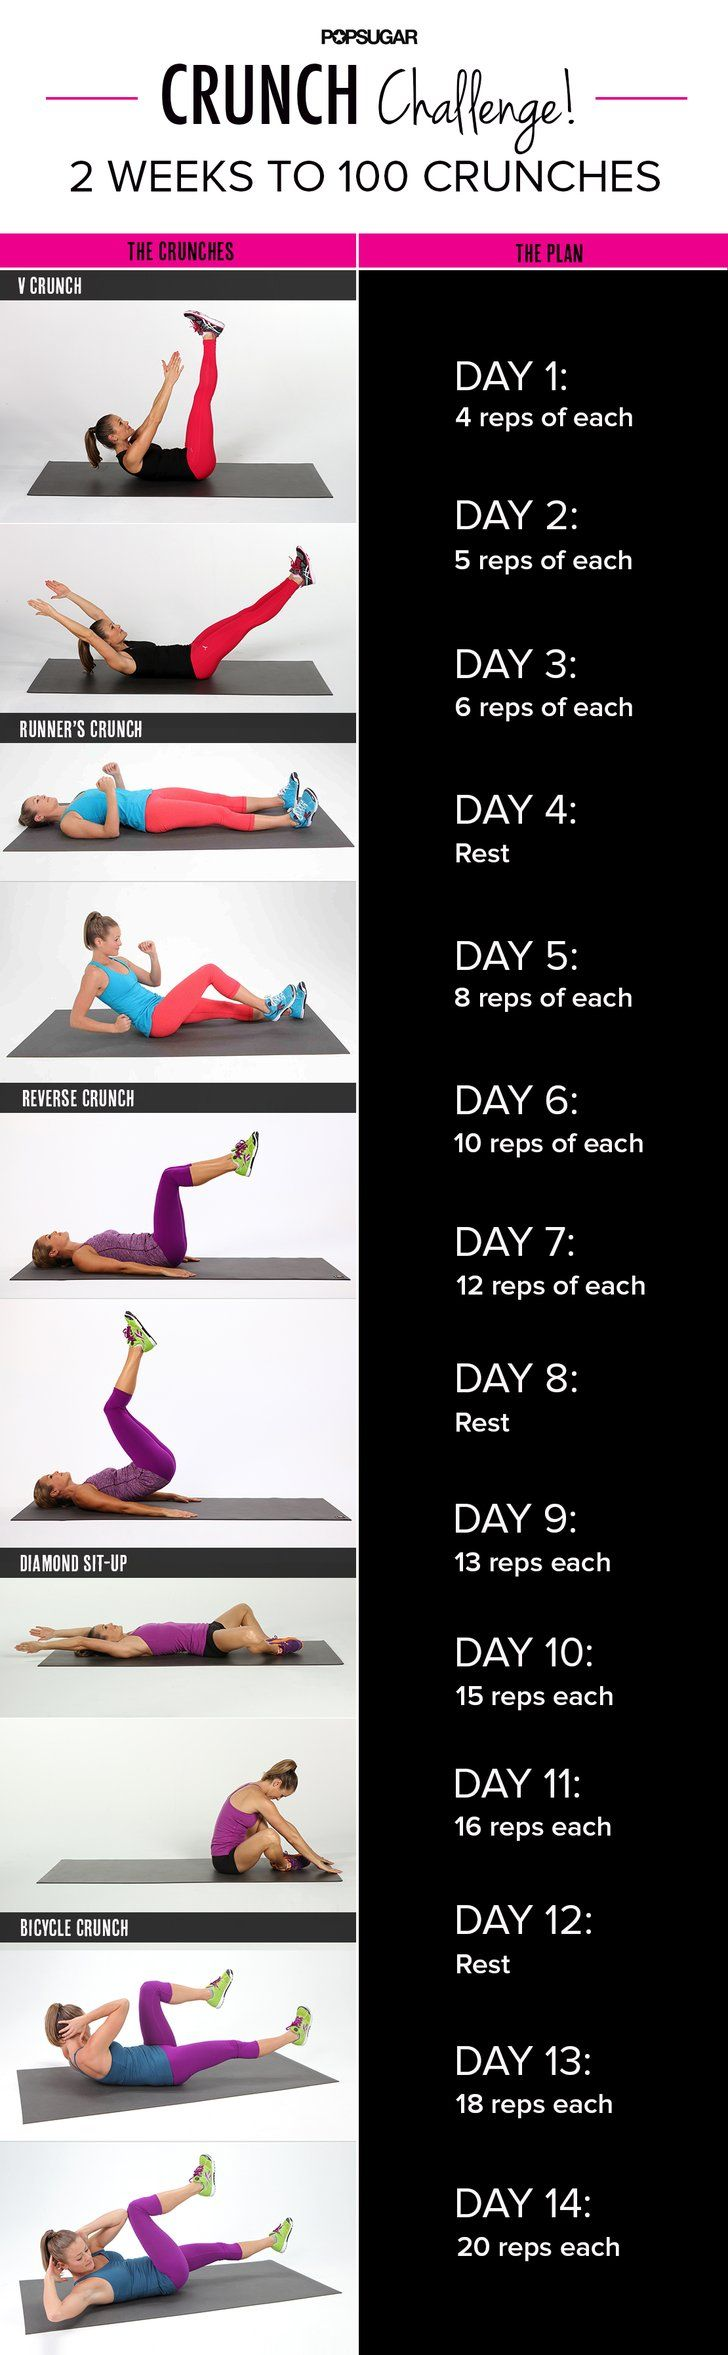 It's Crunch Time! 2-Week Challenge to 100 Crunches while improving every part of your abs and getting a toned body :)